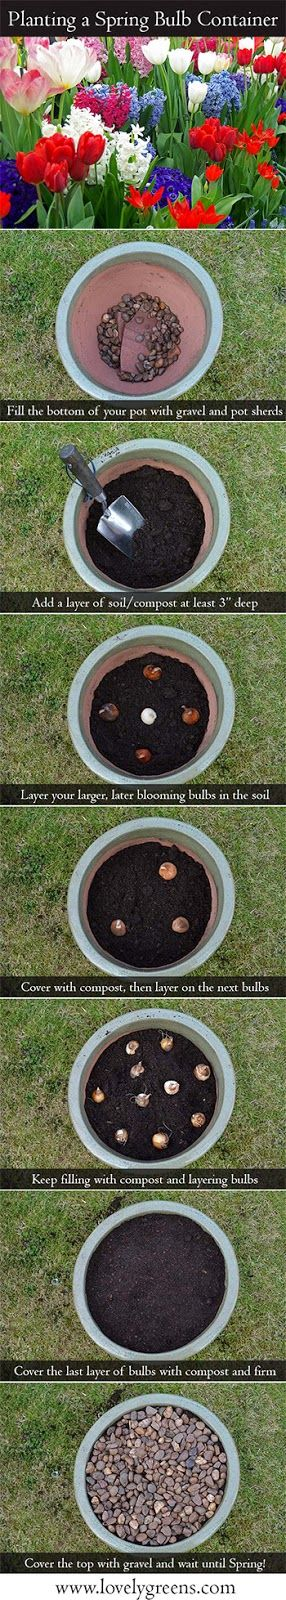 Create a Springtime Flowering Container - an easy and beautiful project that will flower all spring!  #gardening #spring #bulbs #flowers #home